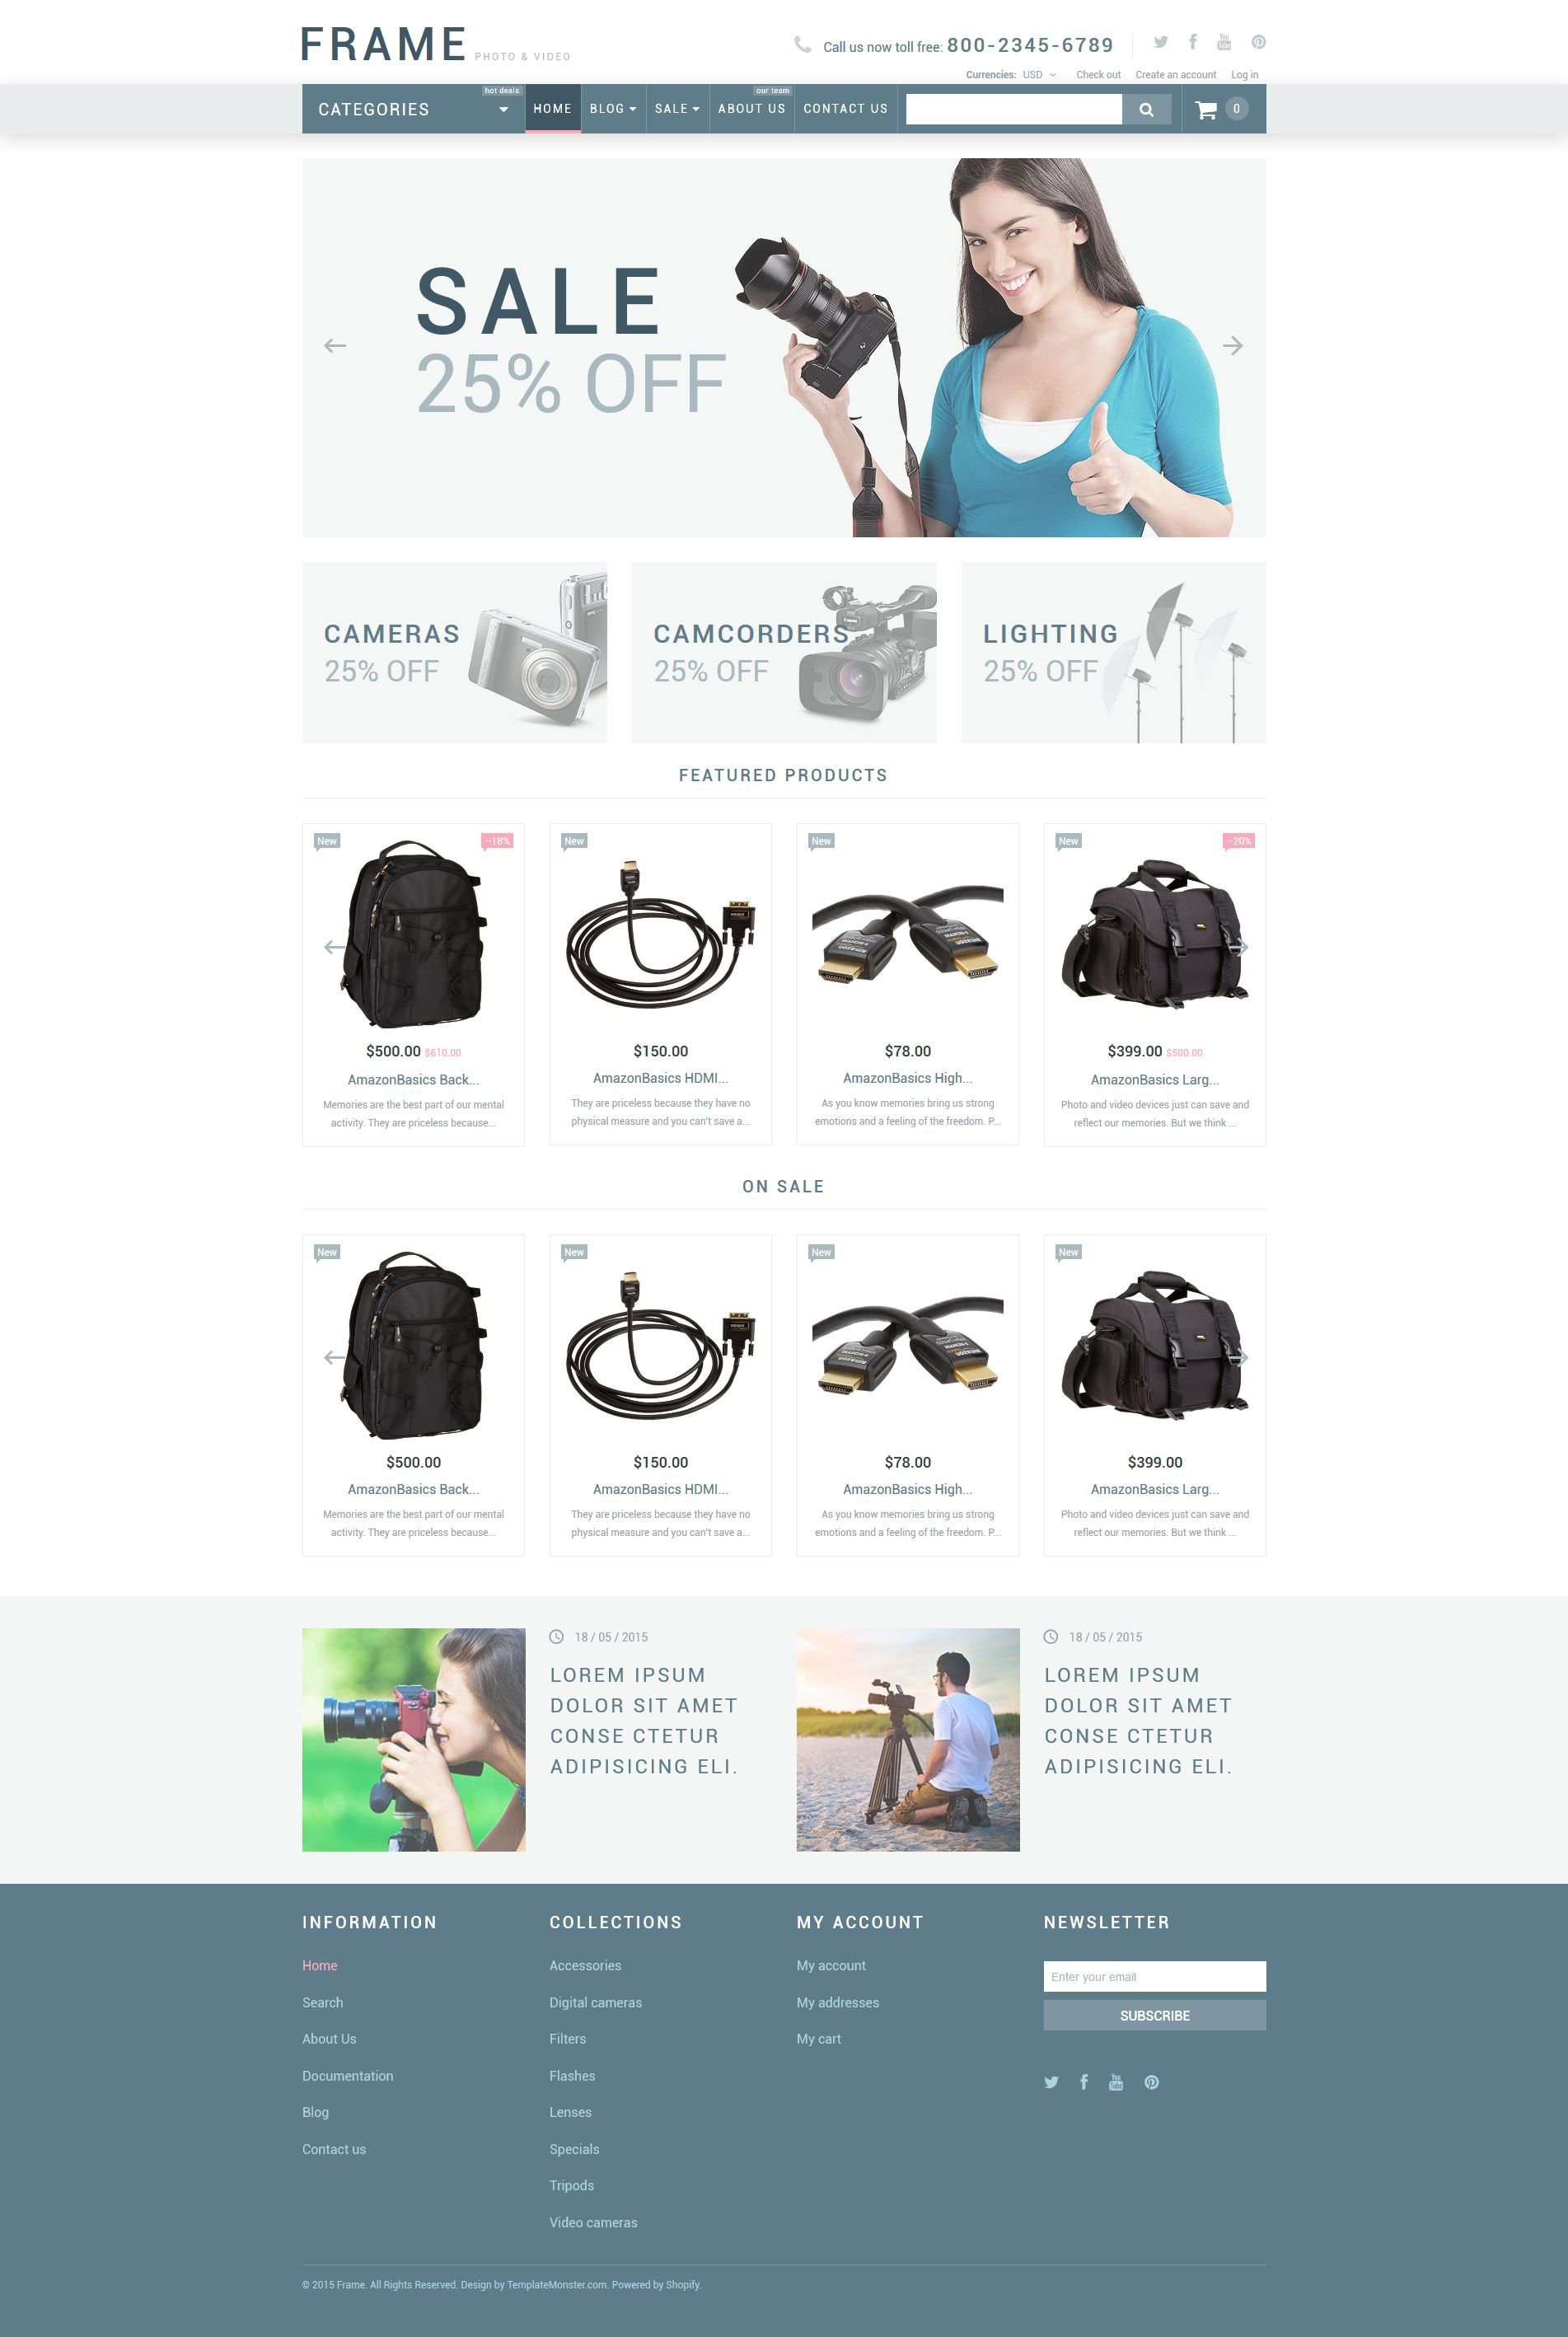 The Frame Photo & Video Online Store Shopify Design 54005, one of the best Shopify themes of its kind (electronics, most popular), also known as frame photo & video online store Shopify template, shop Shopify template, camera Shopify template, products Shopify template, electronics Shopify template, portable Shopify template, monitor Shopify template, cable system Shopify template, technology Shopify template, processor Shopify template, installation Shopify template, hardware Shopify template, memory Shopify template, cards Shopify template, digital storage Shopify template, utilities Shopify template, Panasonic reviews Shopify template, Canon PowerShot bestsellers Shopify template, Sony flash Shopify template, raynox Shopify template, lenses Shopify template, prices Shopify template, buy and related with frame photo & video online store, shop, camera, products, electronics, portable, monitor, cable system, technology, processor, installation, hardware, memory, cards, digital storage, utilities, Panasonic reviews, Canon PowerShot bestsellers, Sony flash, raynox, lenses, prices, buy, etc.